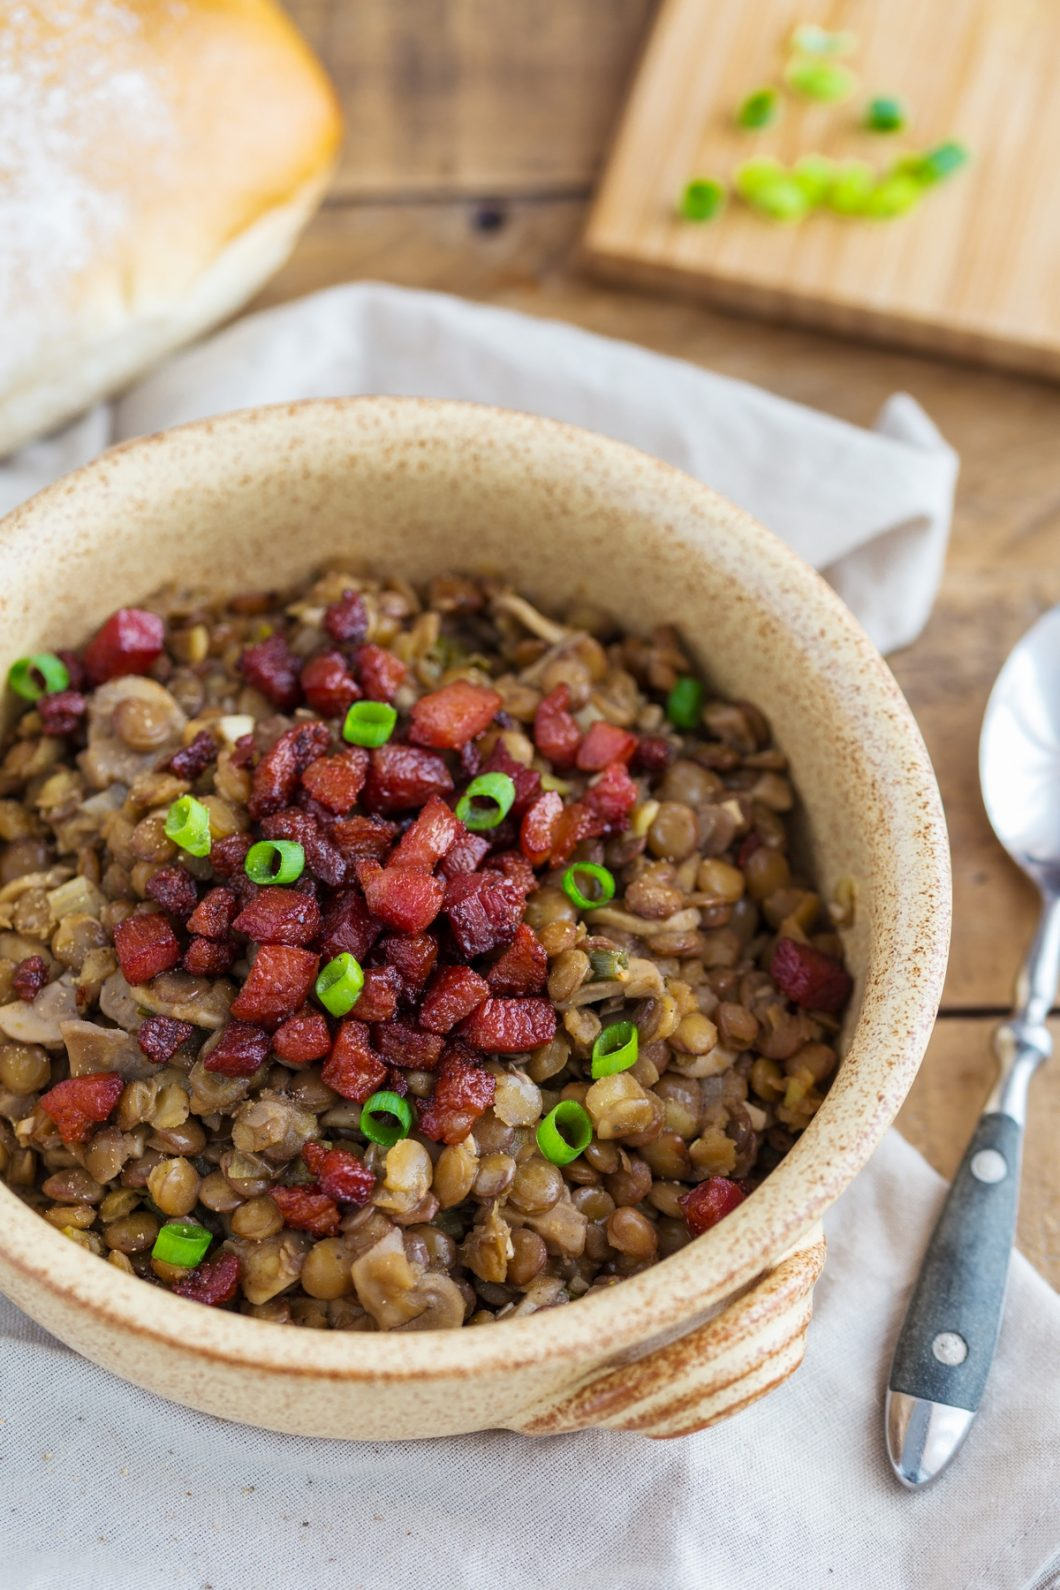 Crispy bacon and fresh spring onion topping a portion of lentil stew.